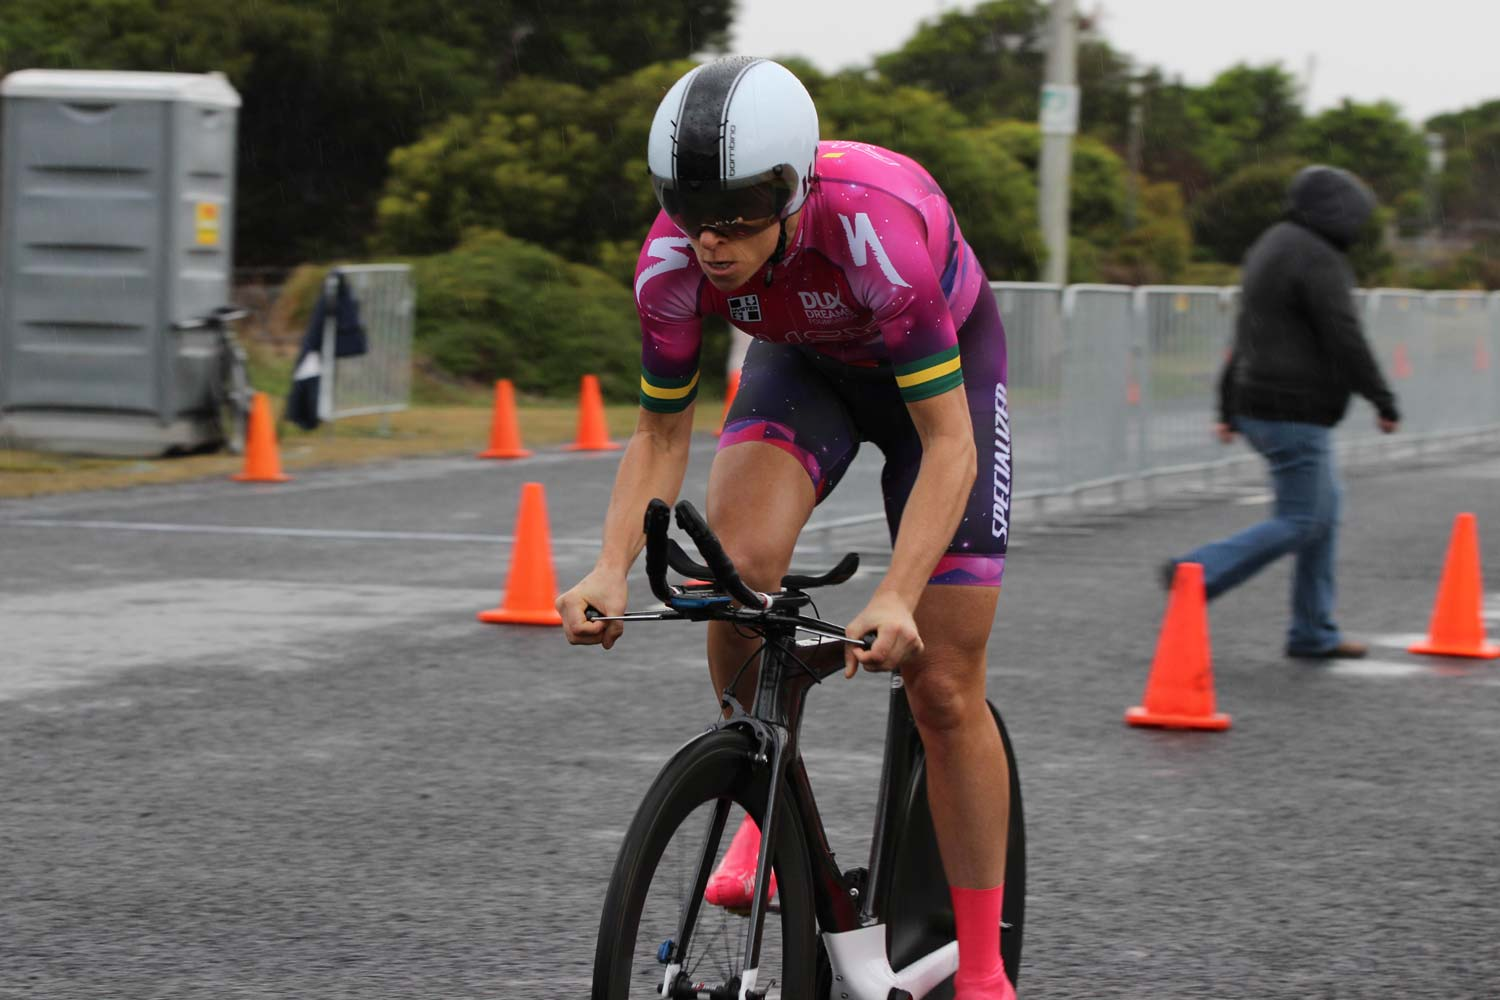 Victory on her 42nd birthday: Bridie O'Donnell –first in the opening stage of the Mersey Valley Tour. Photo: Caitlin Johnston (Cycling Australia)